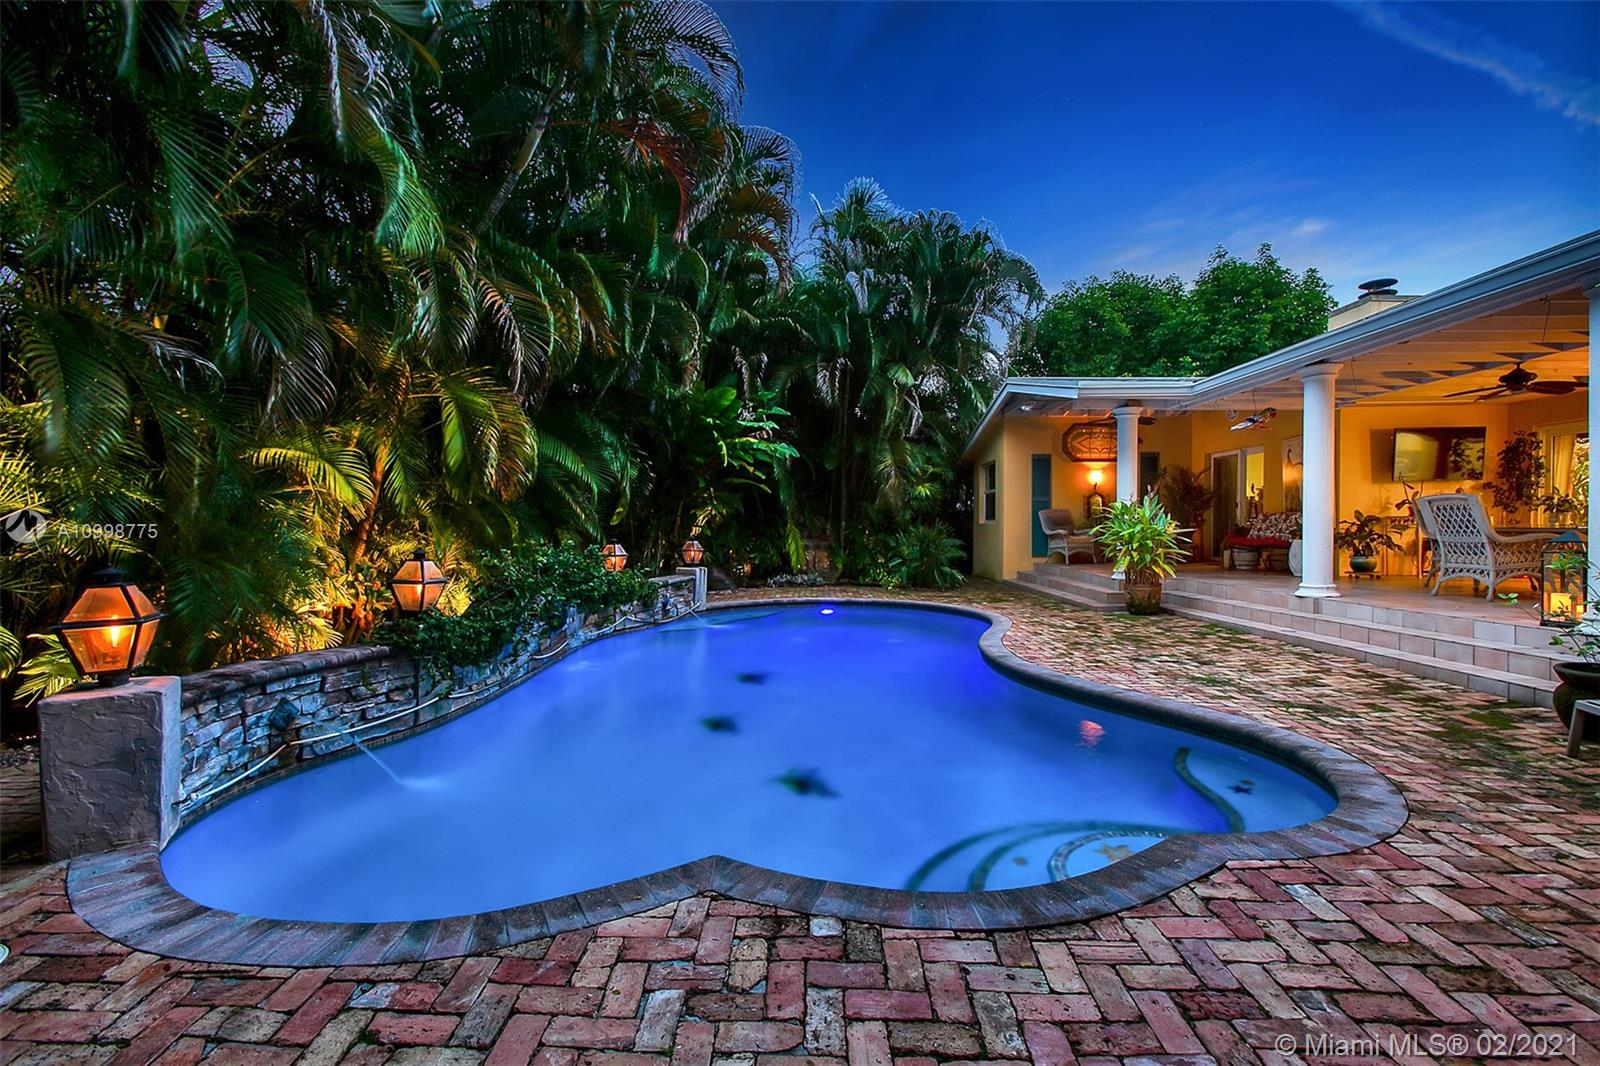 Look no further! This beautiful 2/2 in Rio Vista is your own secluded tropical paradise. Featuring a salt water pool and koi pond, gas range, covered patio with a built in gas grill, impact windows and doors, newer roof, recently updated bathroom, wired for security, surround sound and exterior entertainment. Centrally located a few blocks from Las Olas blvd and a short bike ride away from Fort Lauderdale beach. This home has it all.